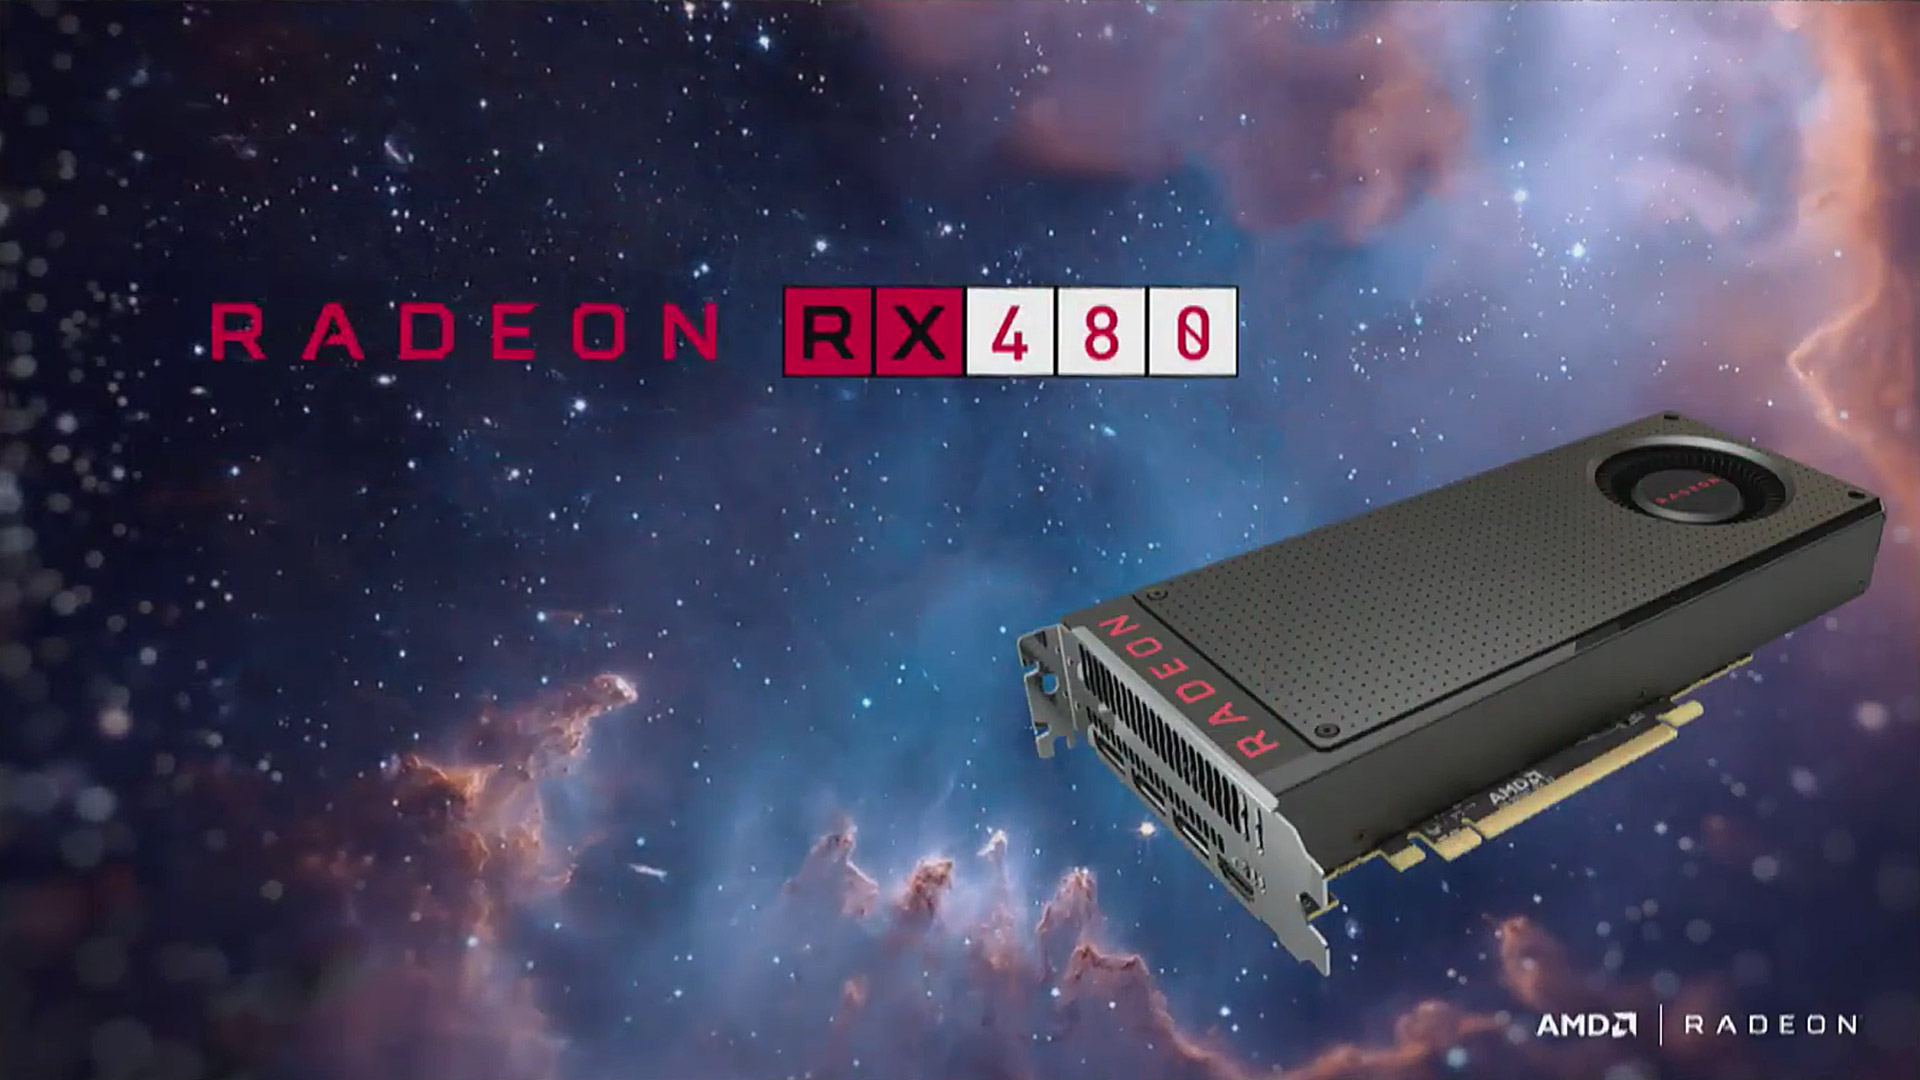 AMD Announces RX 480 GPU at $199, Specs, Release Date, and More